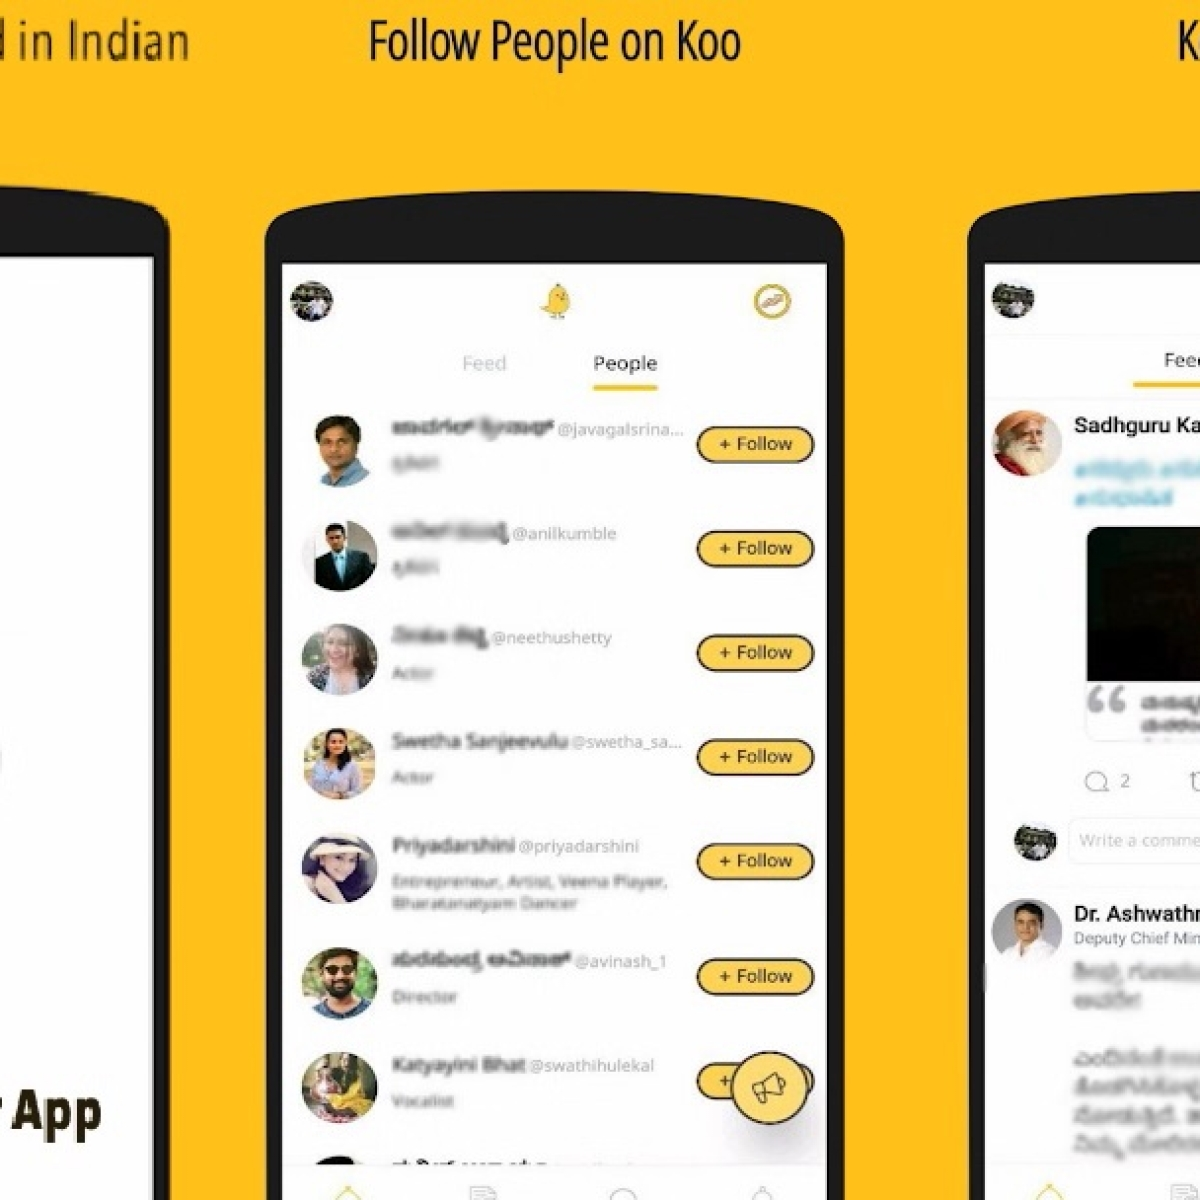 FPJ Explains: What is Koo? All you need to know about Twitter's new desi challenger that BJP ministers are rushing to join